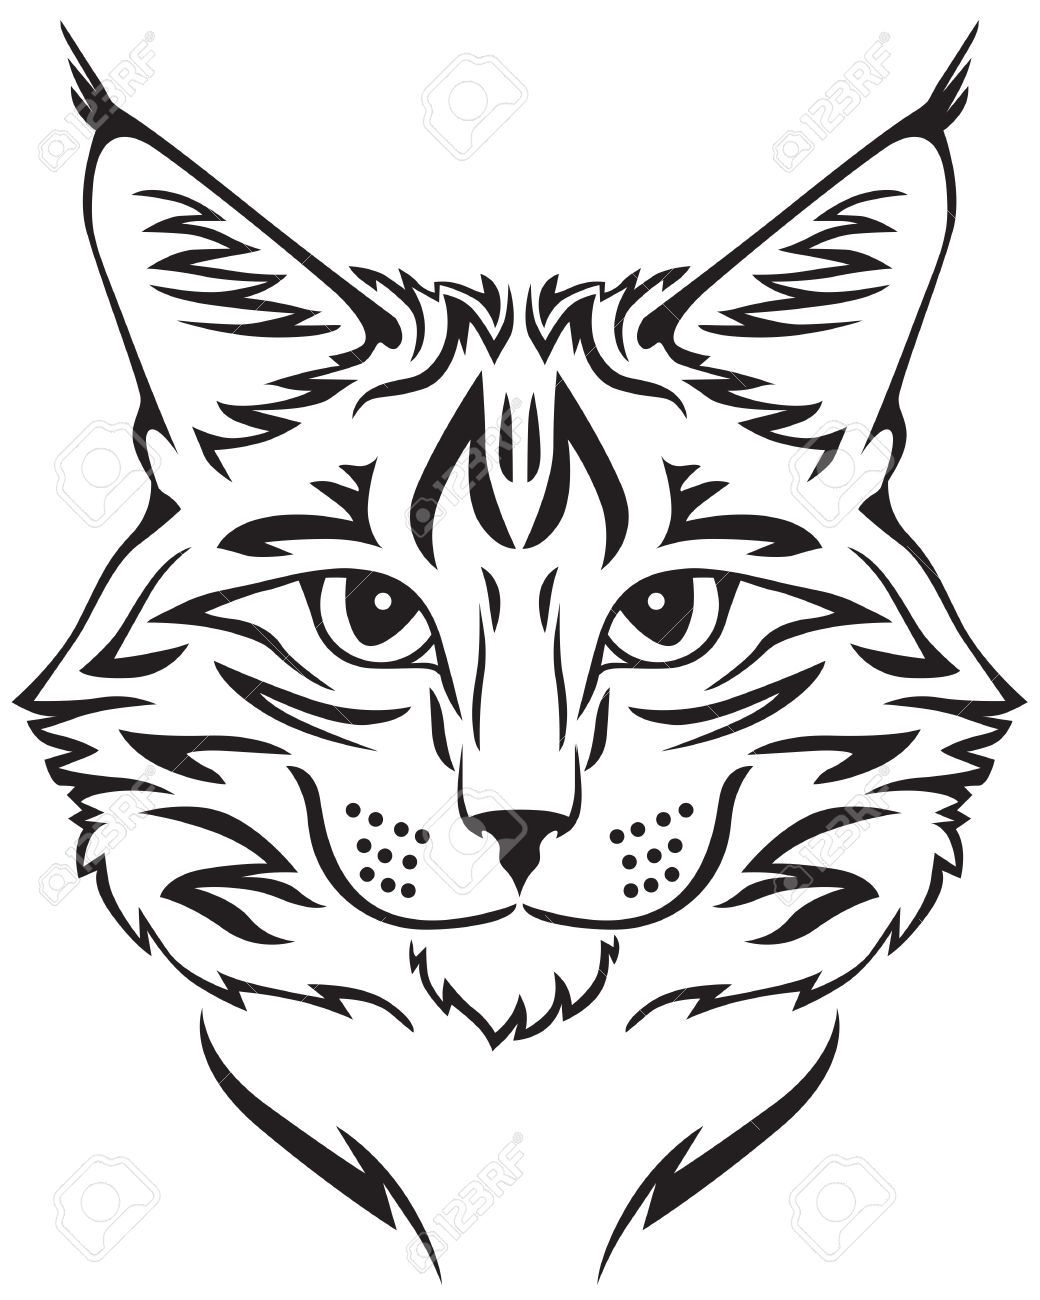 Contour Image Of Muzzle Flurry Maine Coon Cat